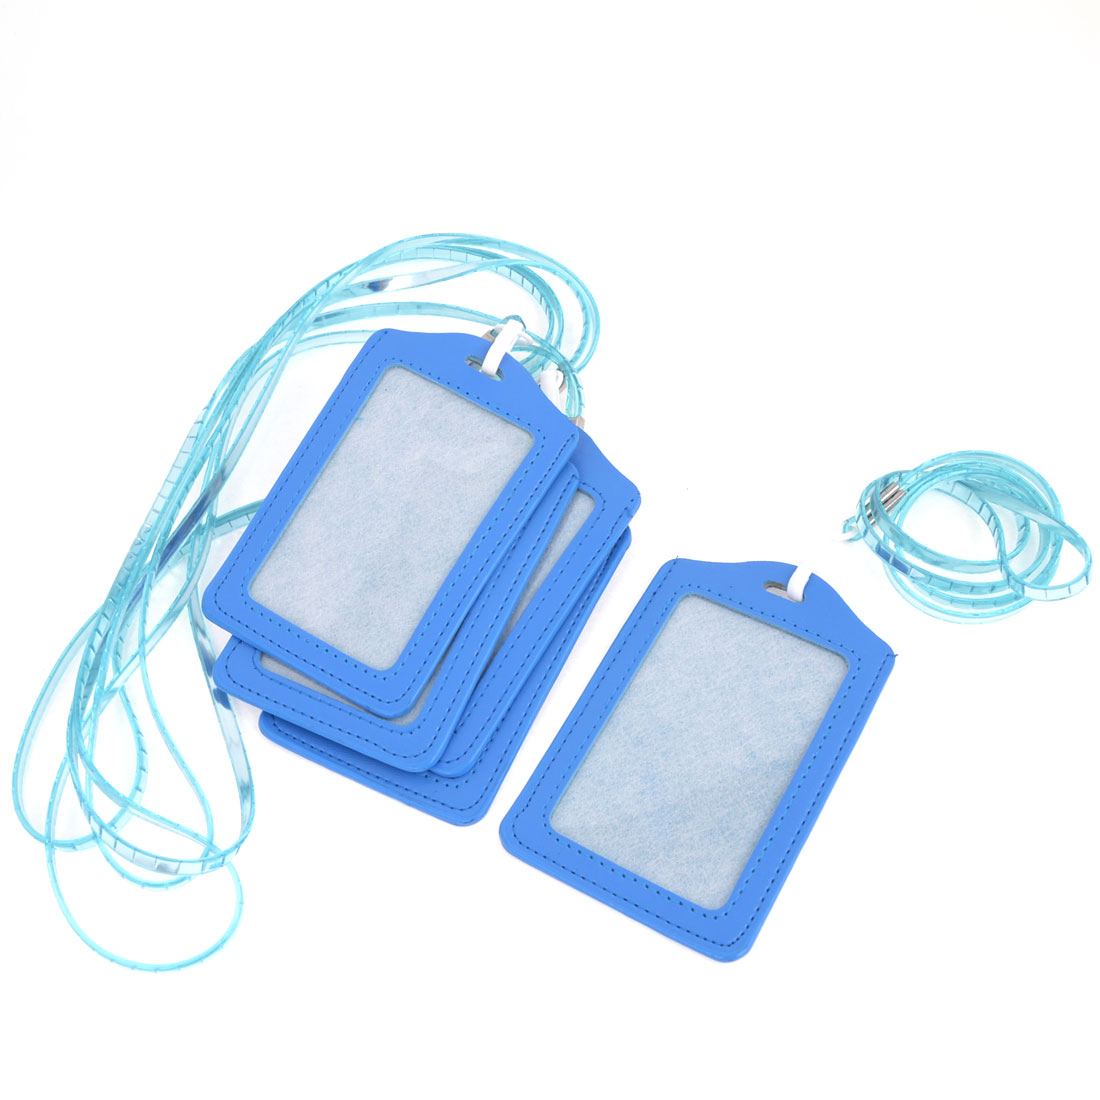 5pcs Office Blue Vertical Name Card ID Badge Holder w Clear Soft Plastic Lanyard